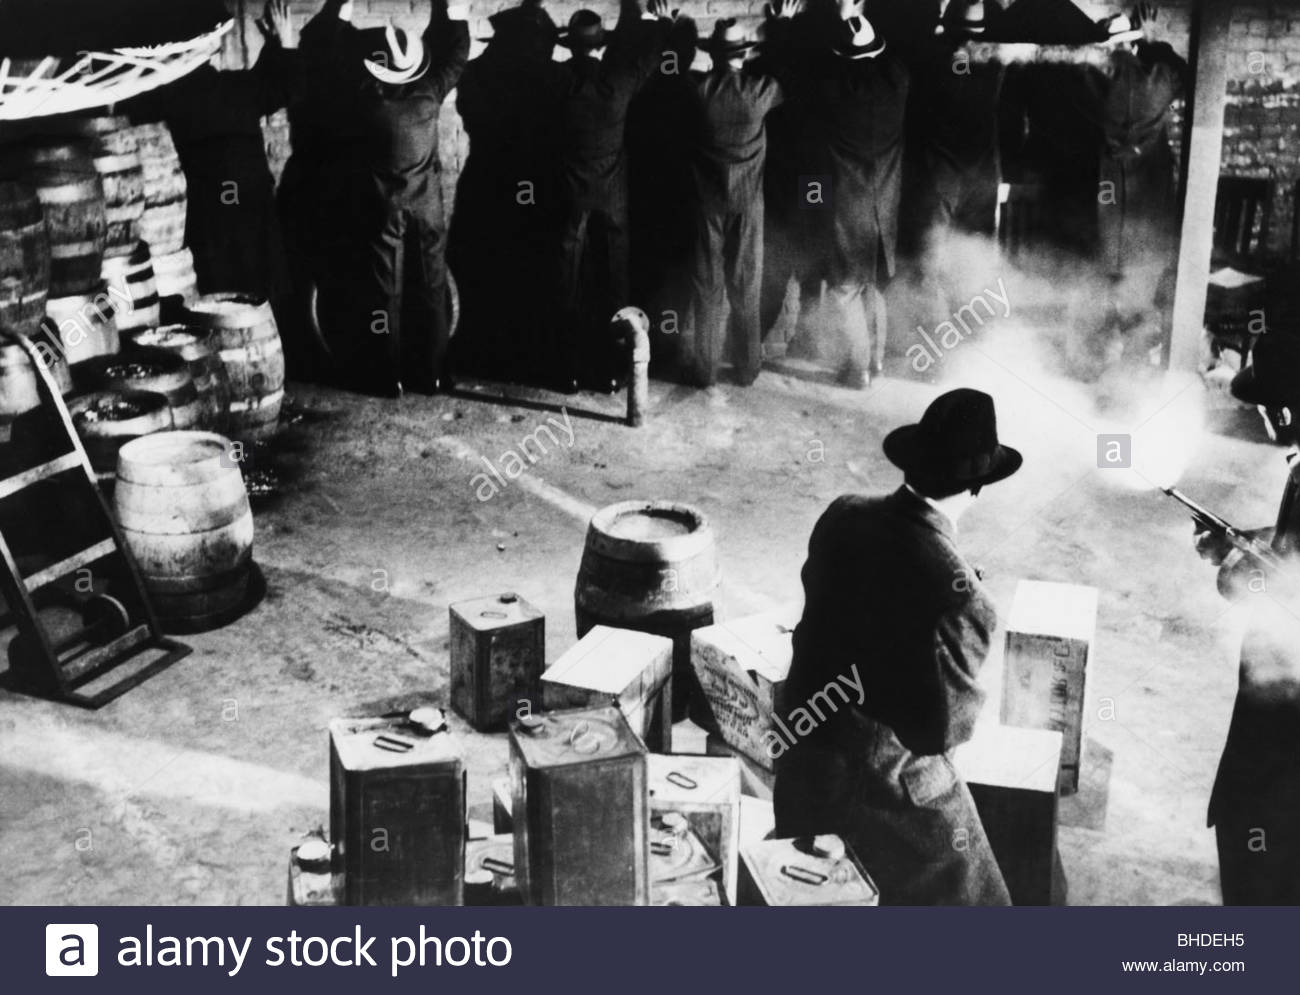 the murders of al capone Al capone himself called the shots purchasing bootleg liquor from a network of suppliers, capone stashed the contraband in the tunnels beneath main street before shipping it to the states via the canadian national railroad and the grand trunk line.